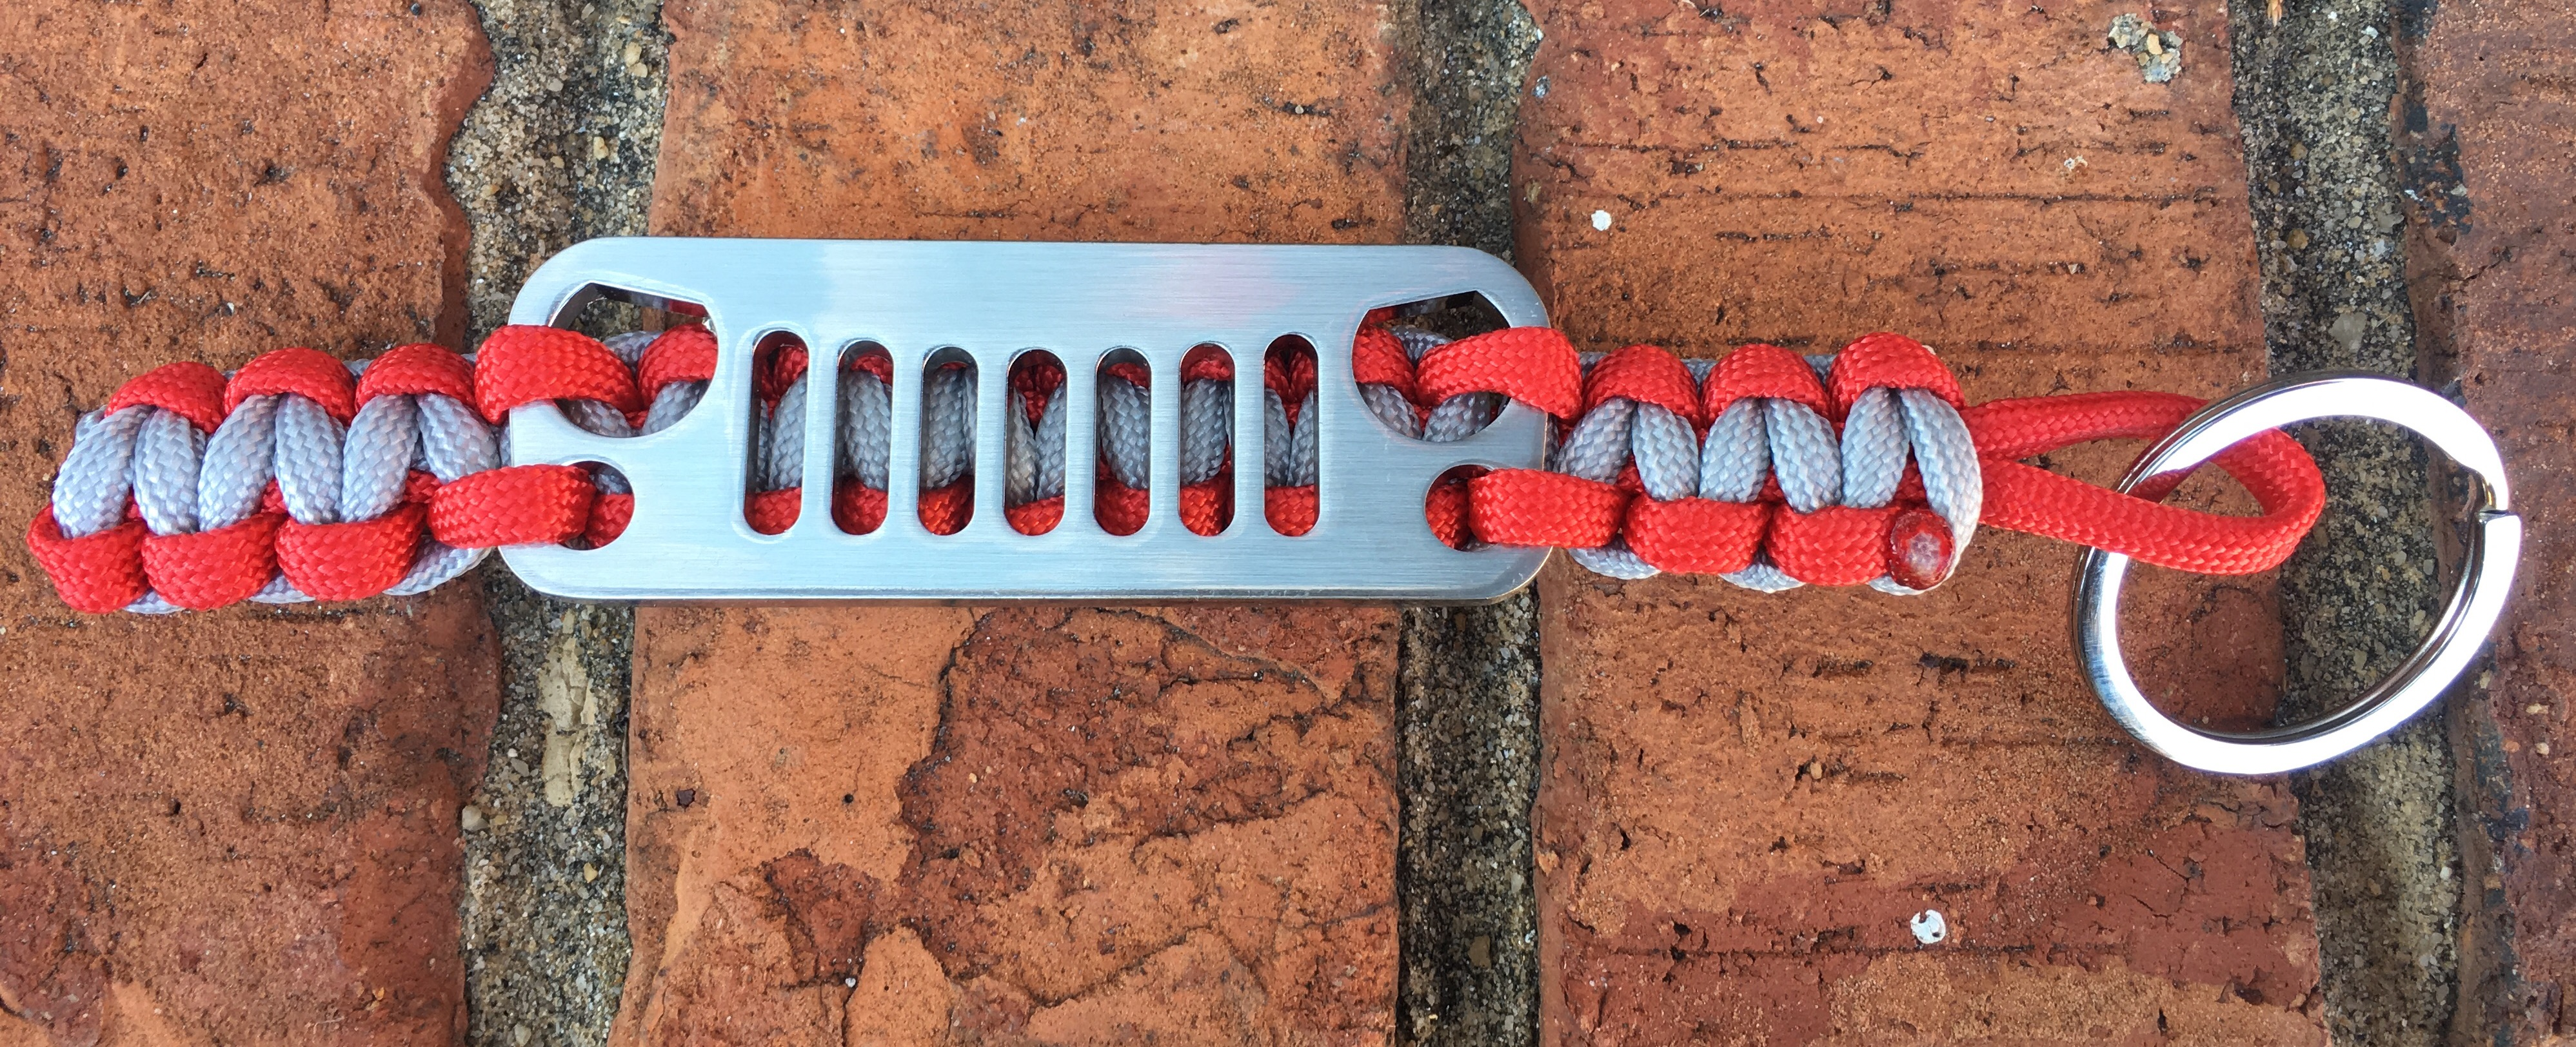 Jeep Grille Paracord Keychain in Red and Silver